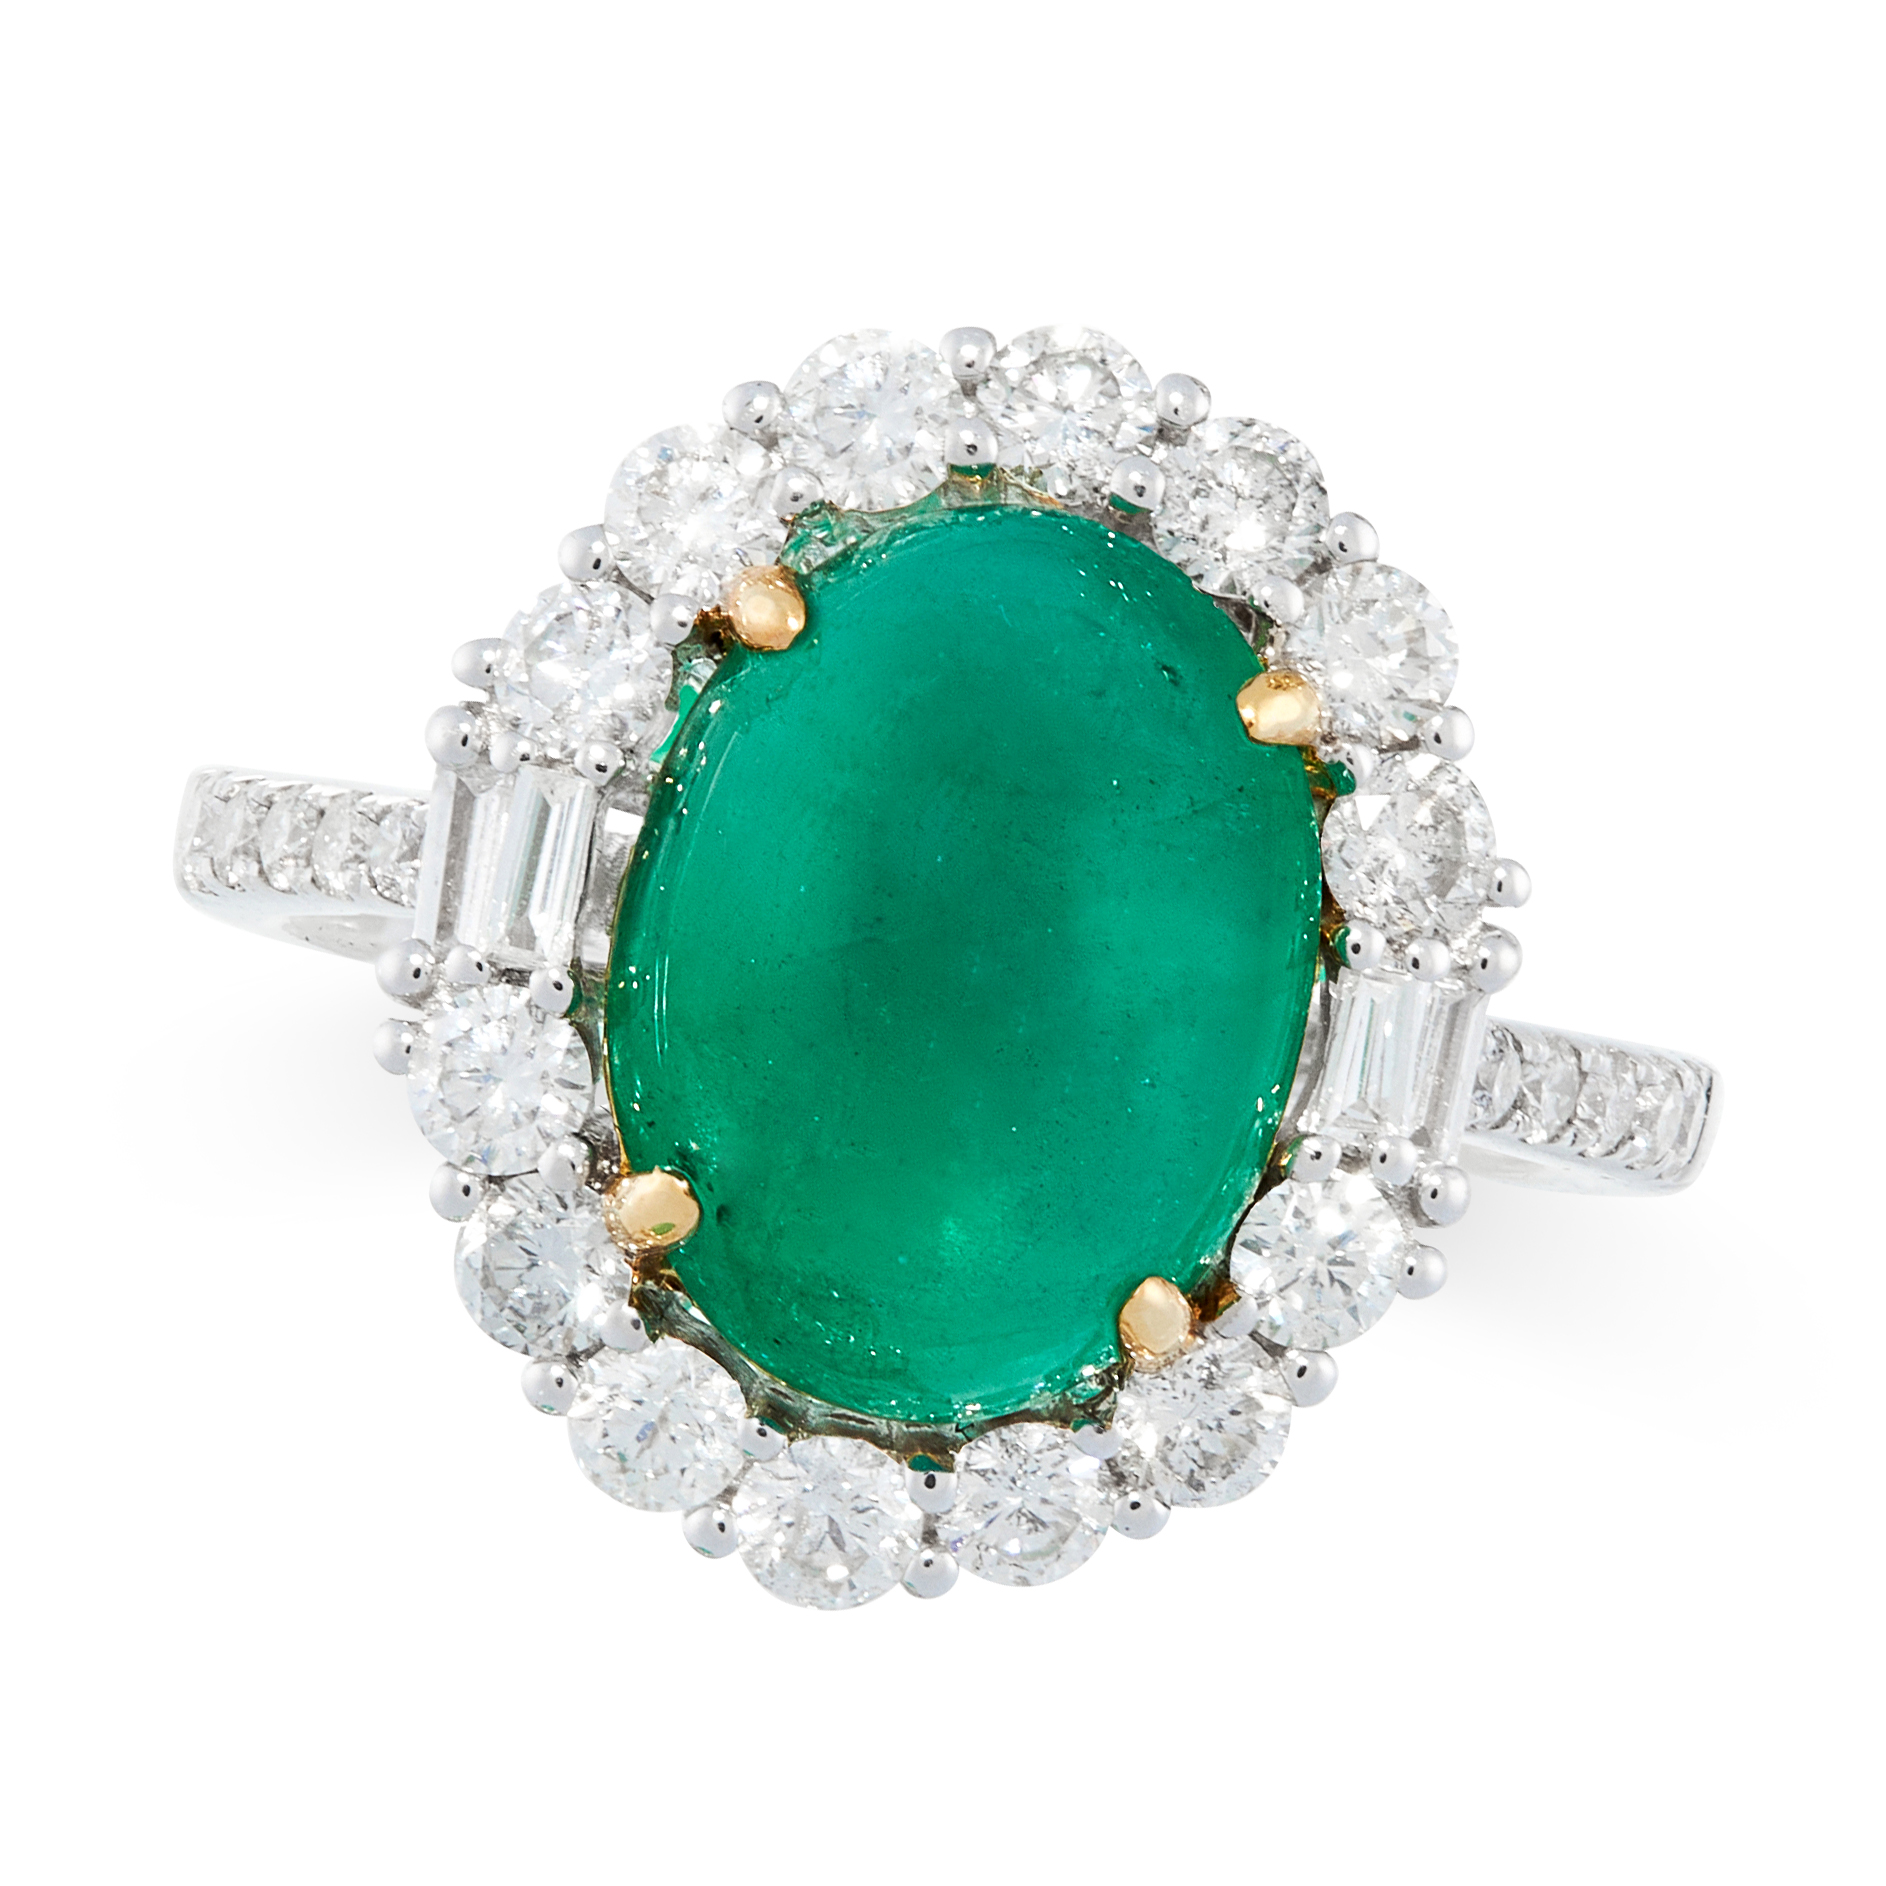 AN EMERALD AND DIAMOND RING in 18ct white gold, set with an oval cabochon emerald of 3.31 carats,